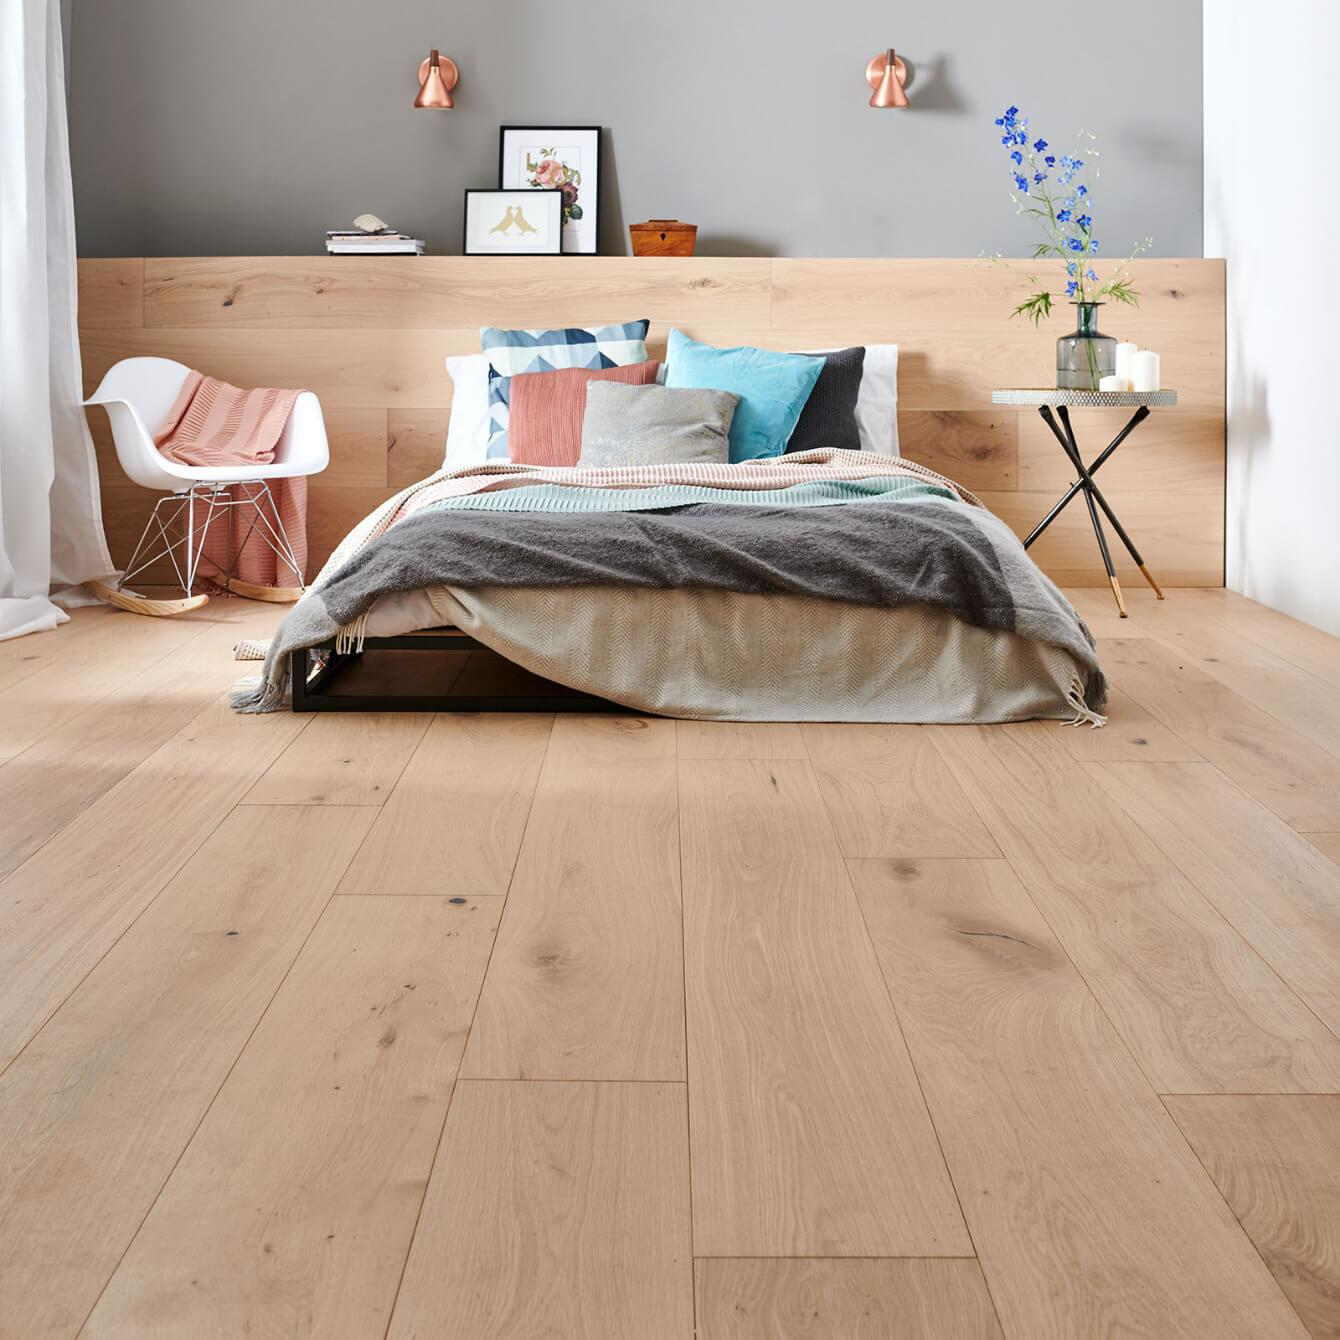 Woodpecker Harlech Raw Oak Lacquered Engineered Wood Flooring 240mm 35-HRA-240